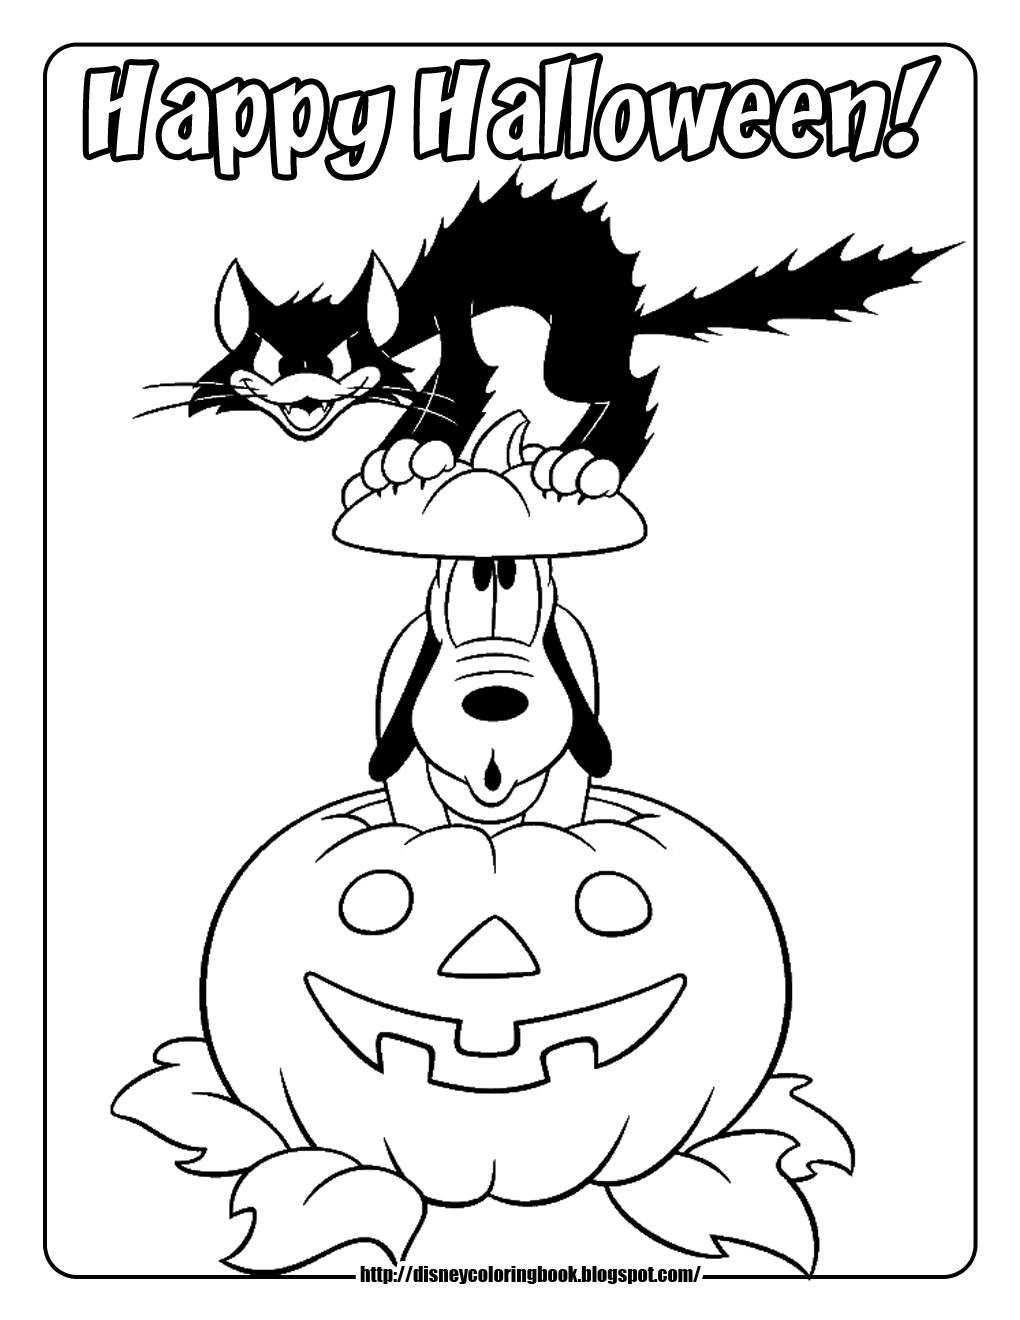 disney coloring pages and sheets for kids september 2011